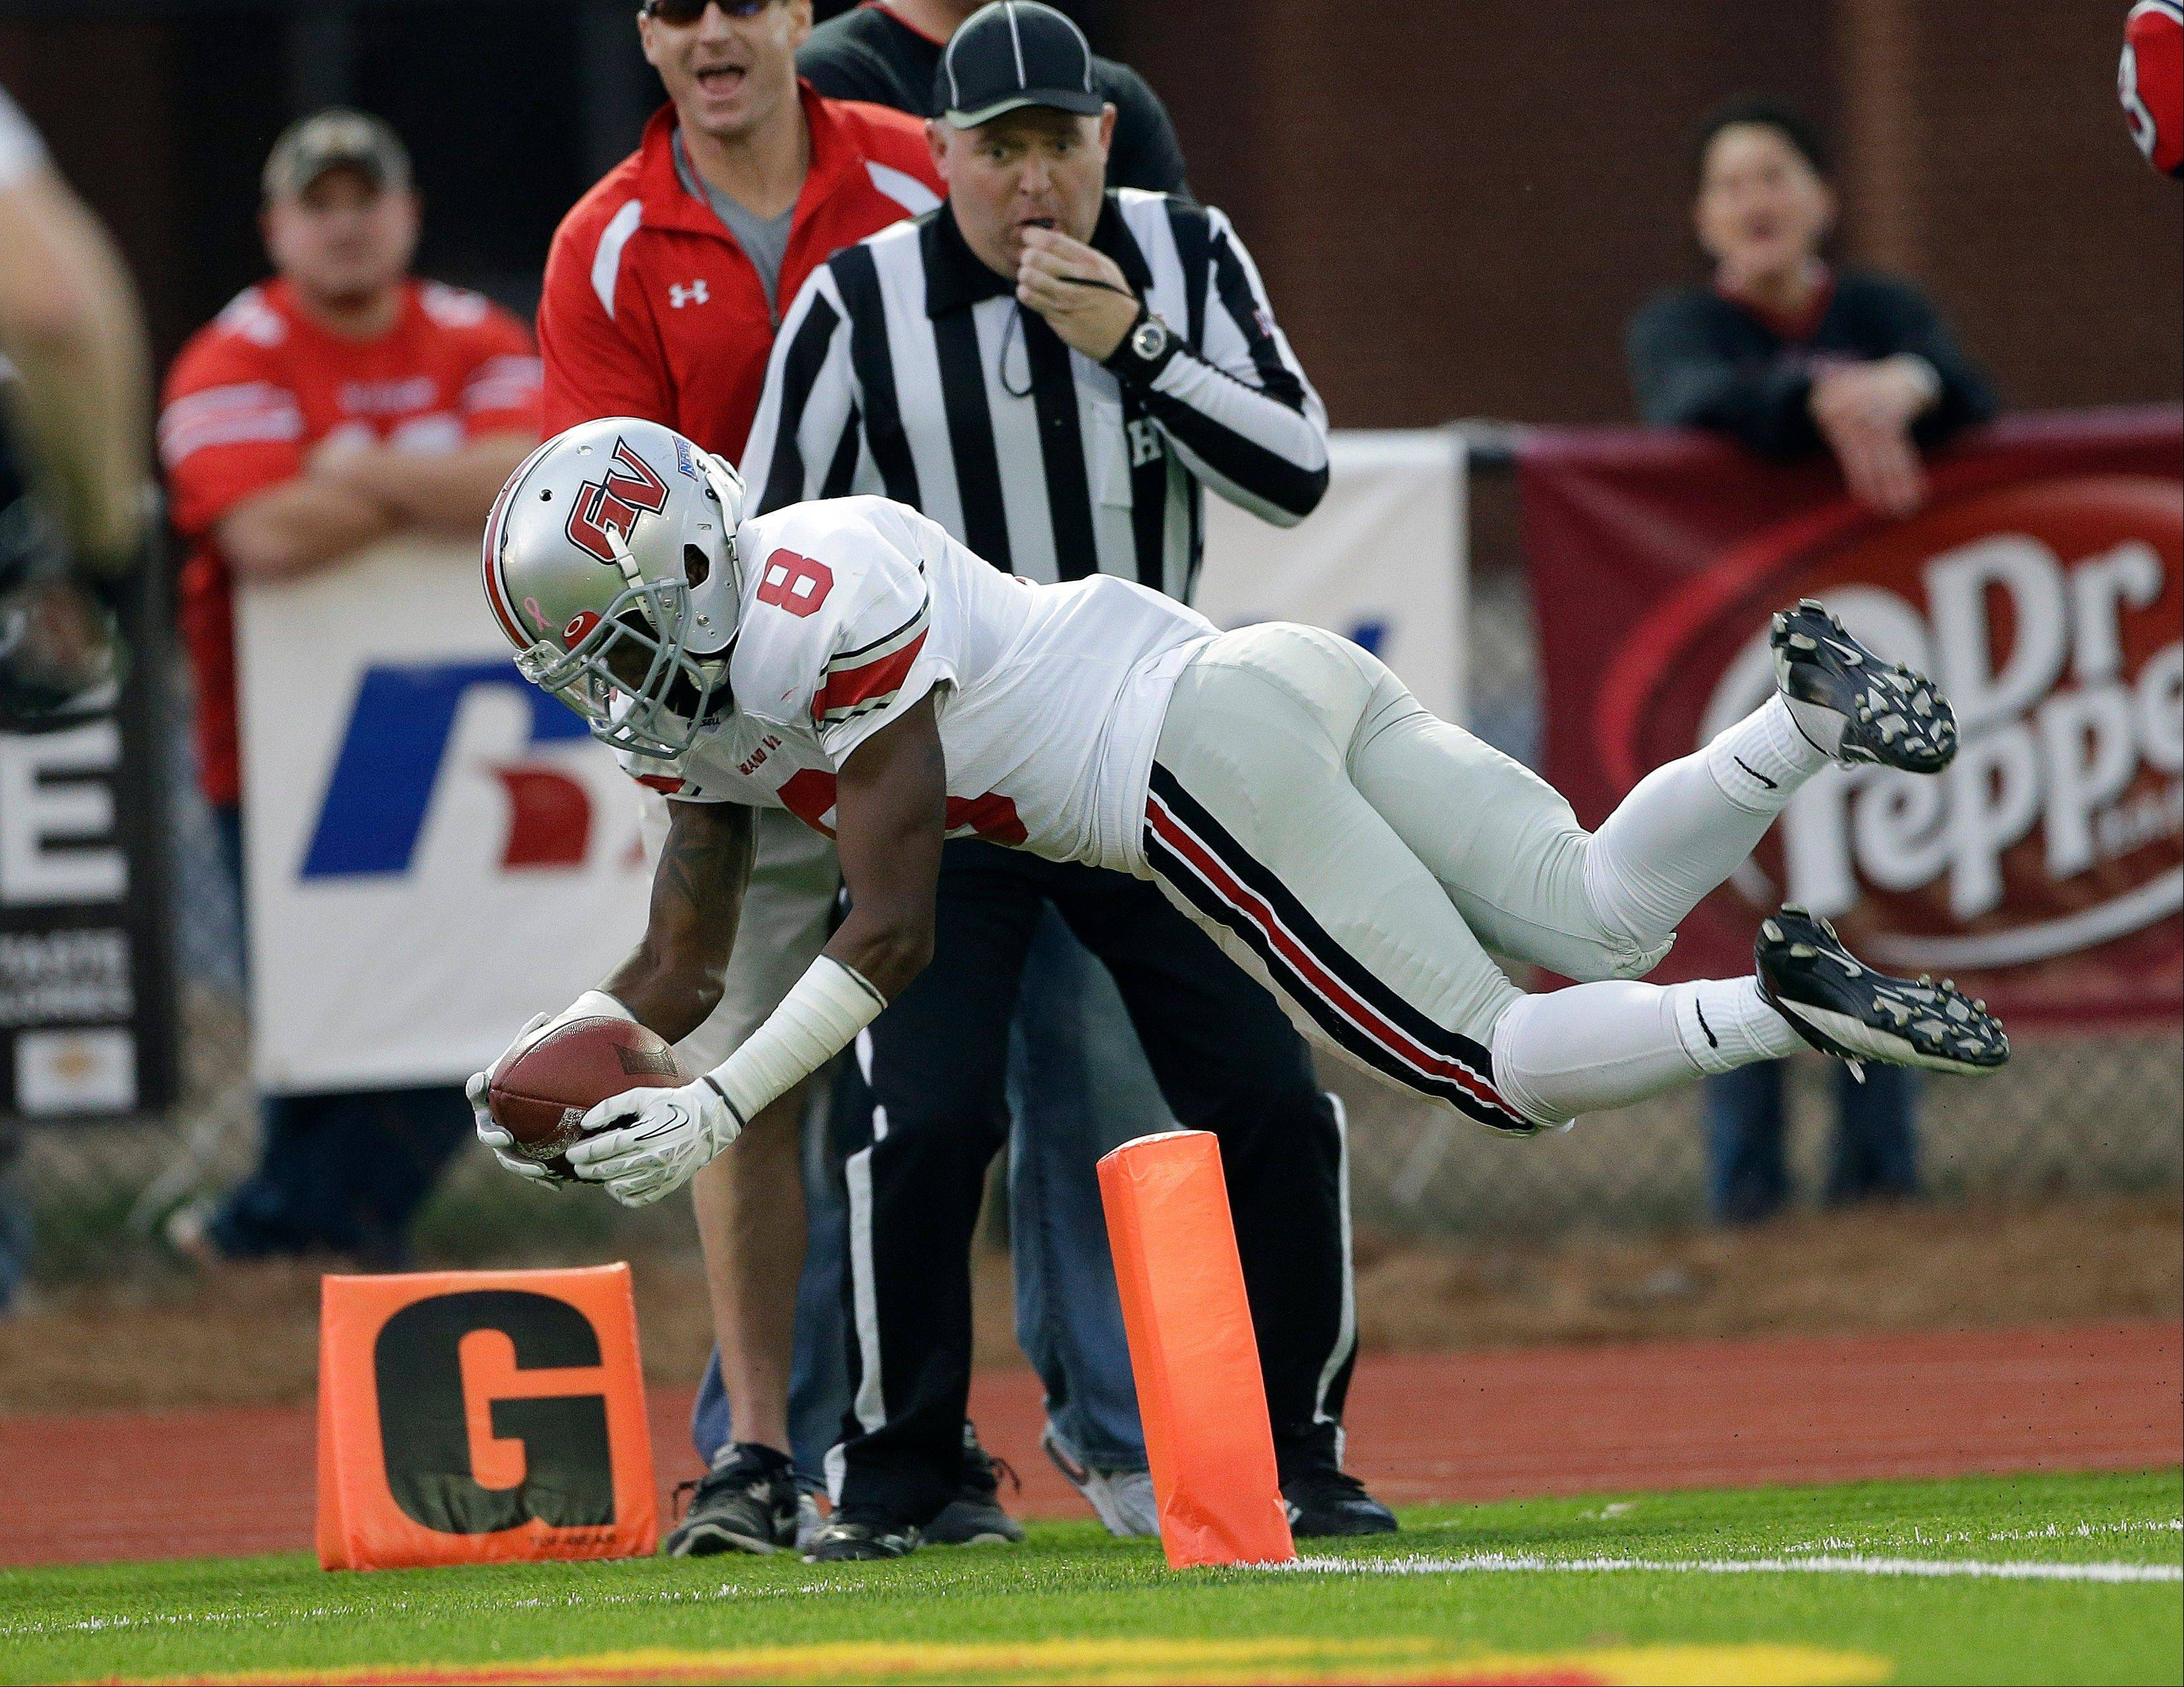 Grand View receiver Davion Hurst dives over the goal line for a touchdown after making a catch in the first half of the NAIA championship game against Cumberlands on Saturday in Rome, Ga.